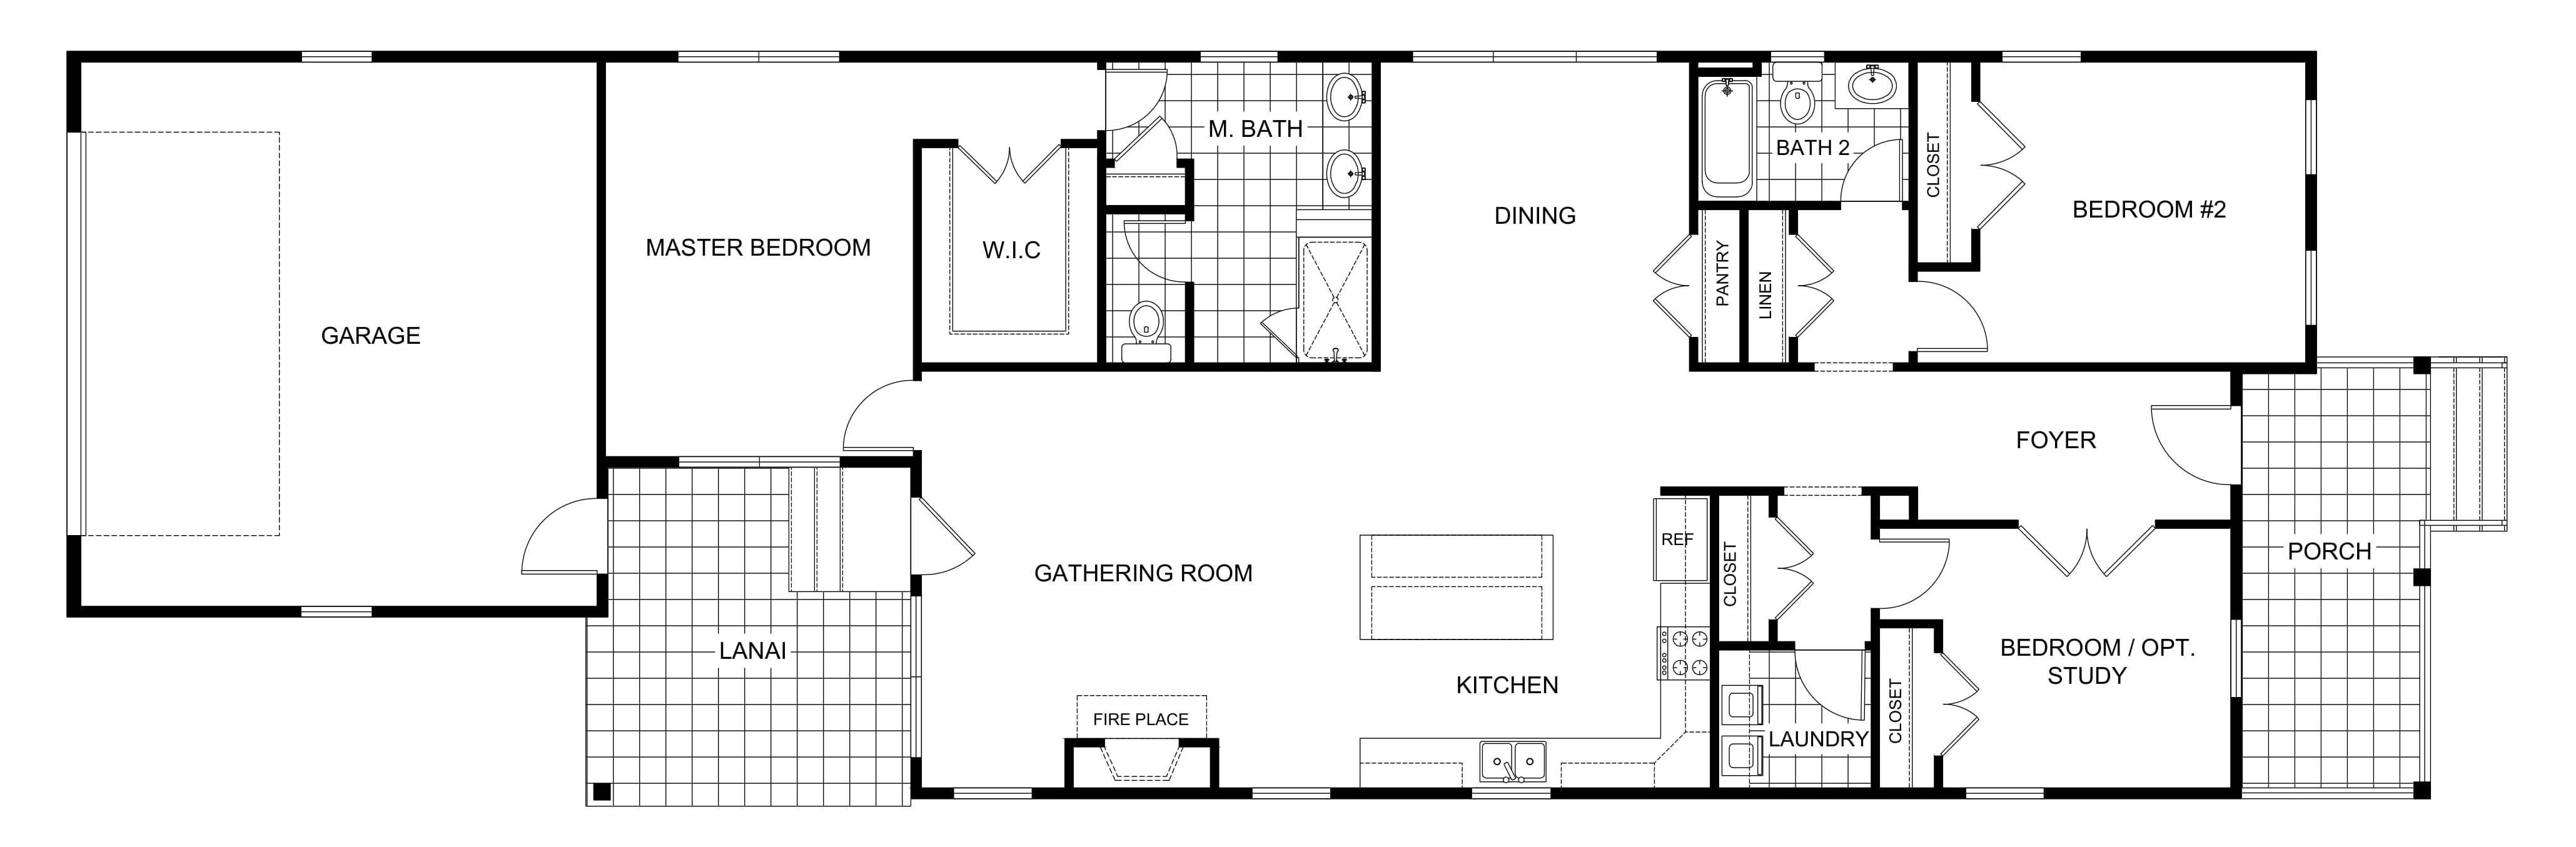 Convert Floor Plan To 2d Make More Presentable Listings Floor Plans Home Design Plan Architectural Floor Plans